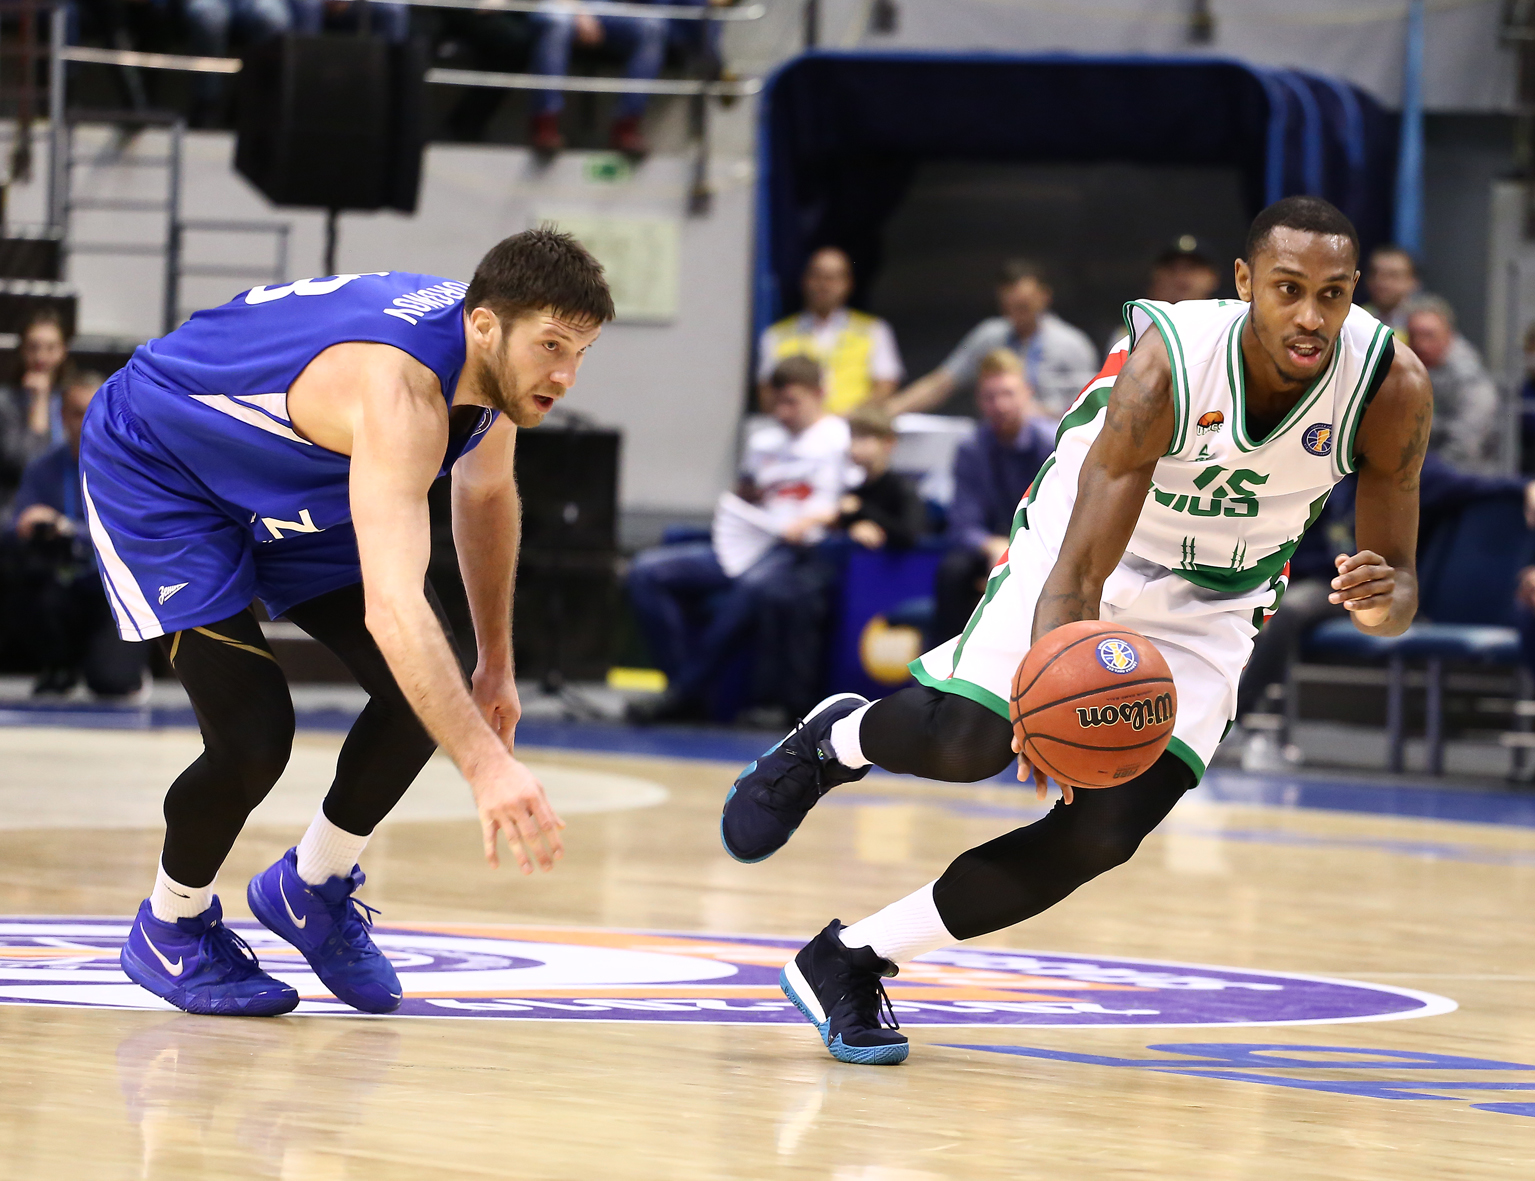 UNICS Escapes In St. Petersburg